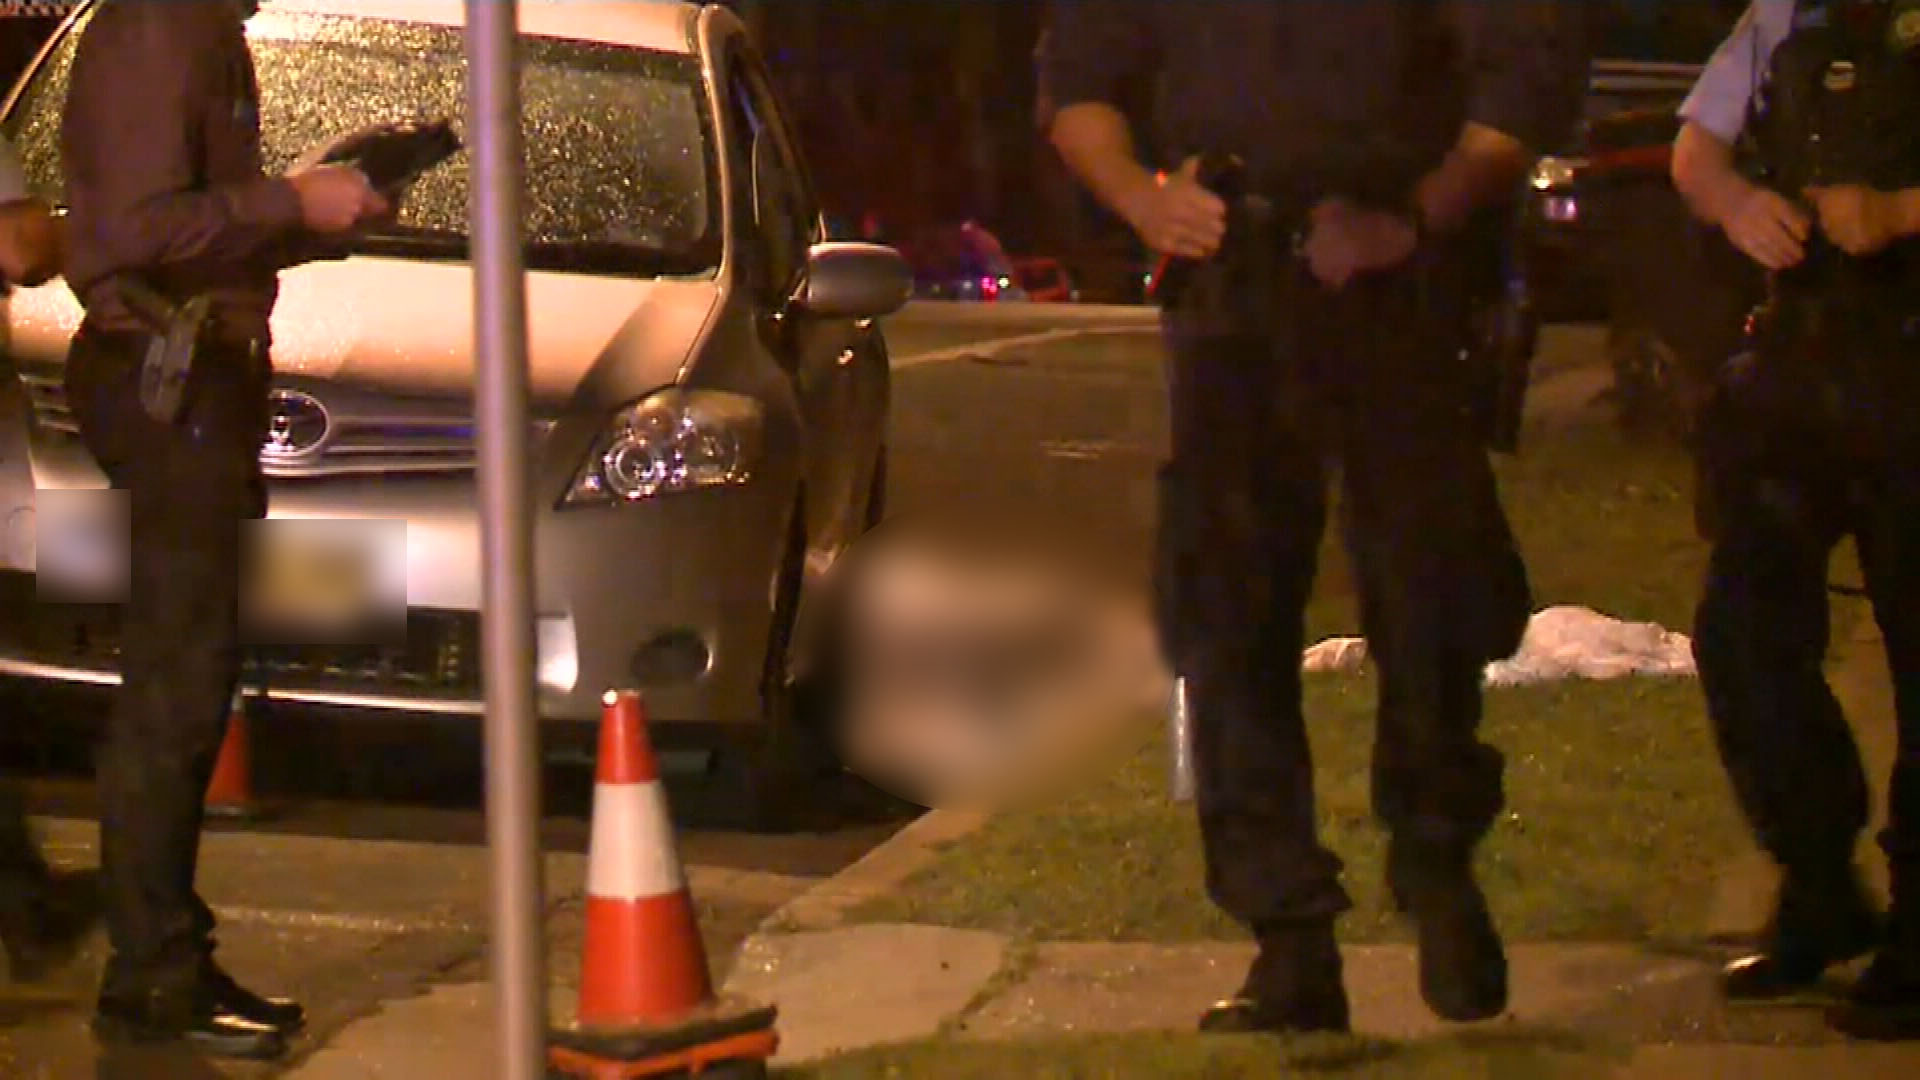 A man has died from gunshot wounds after he was found injured outside a home in St Marys. (9NEWS)